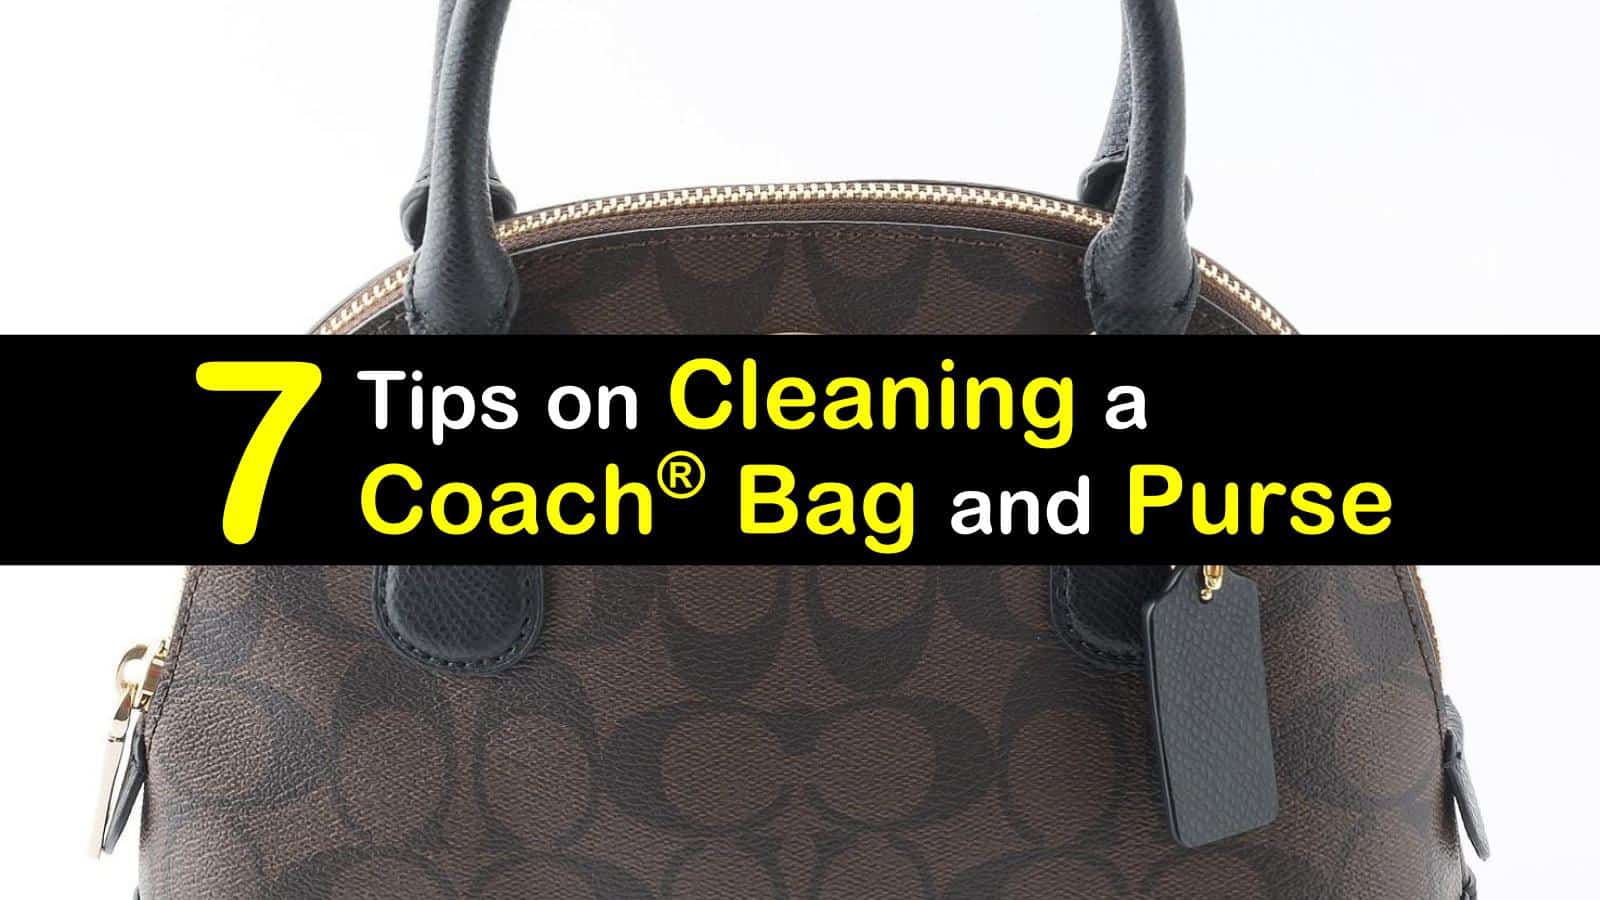 coach bag cleaning titleimg1